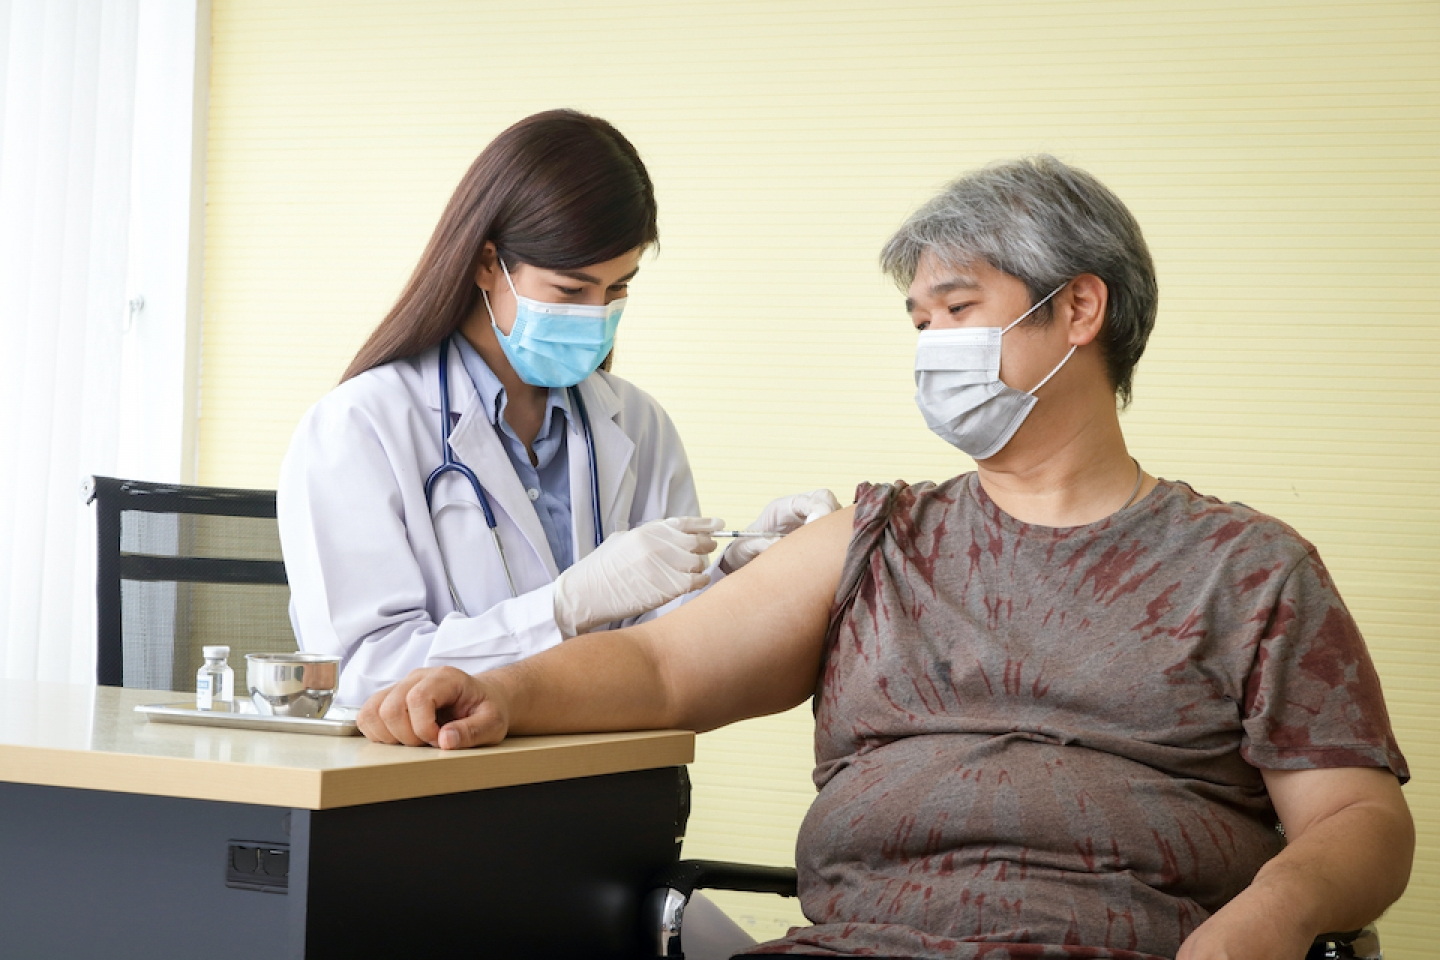 doctor administers vaccine to patient with obesity